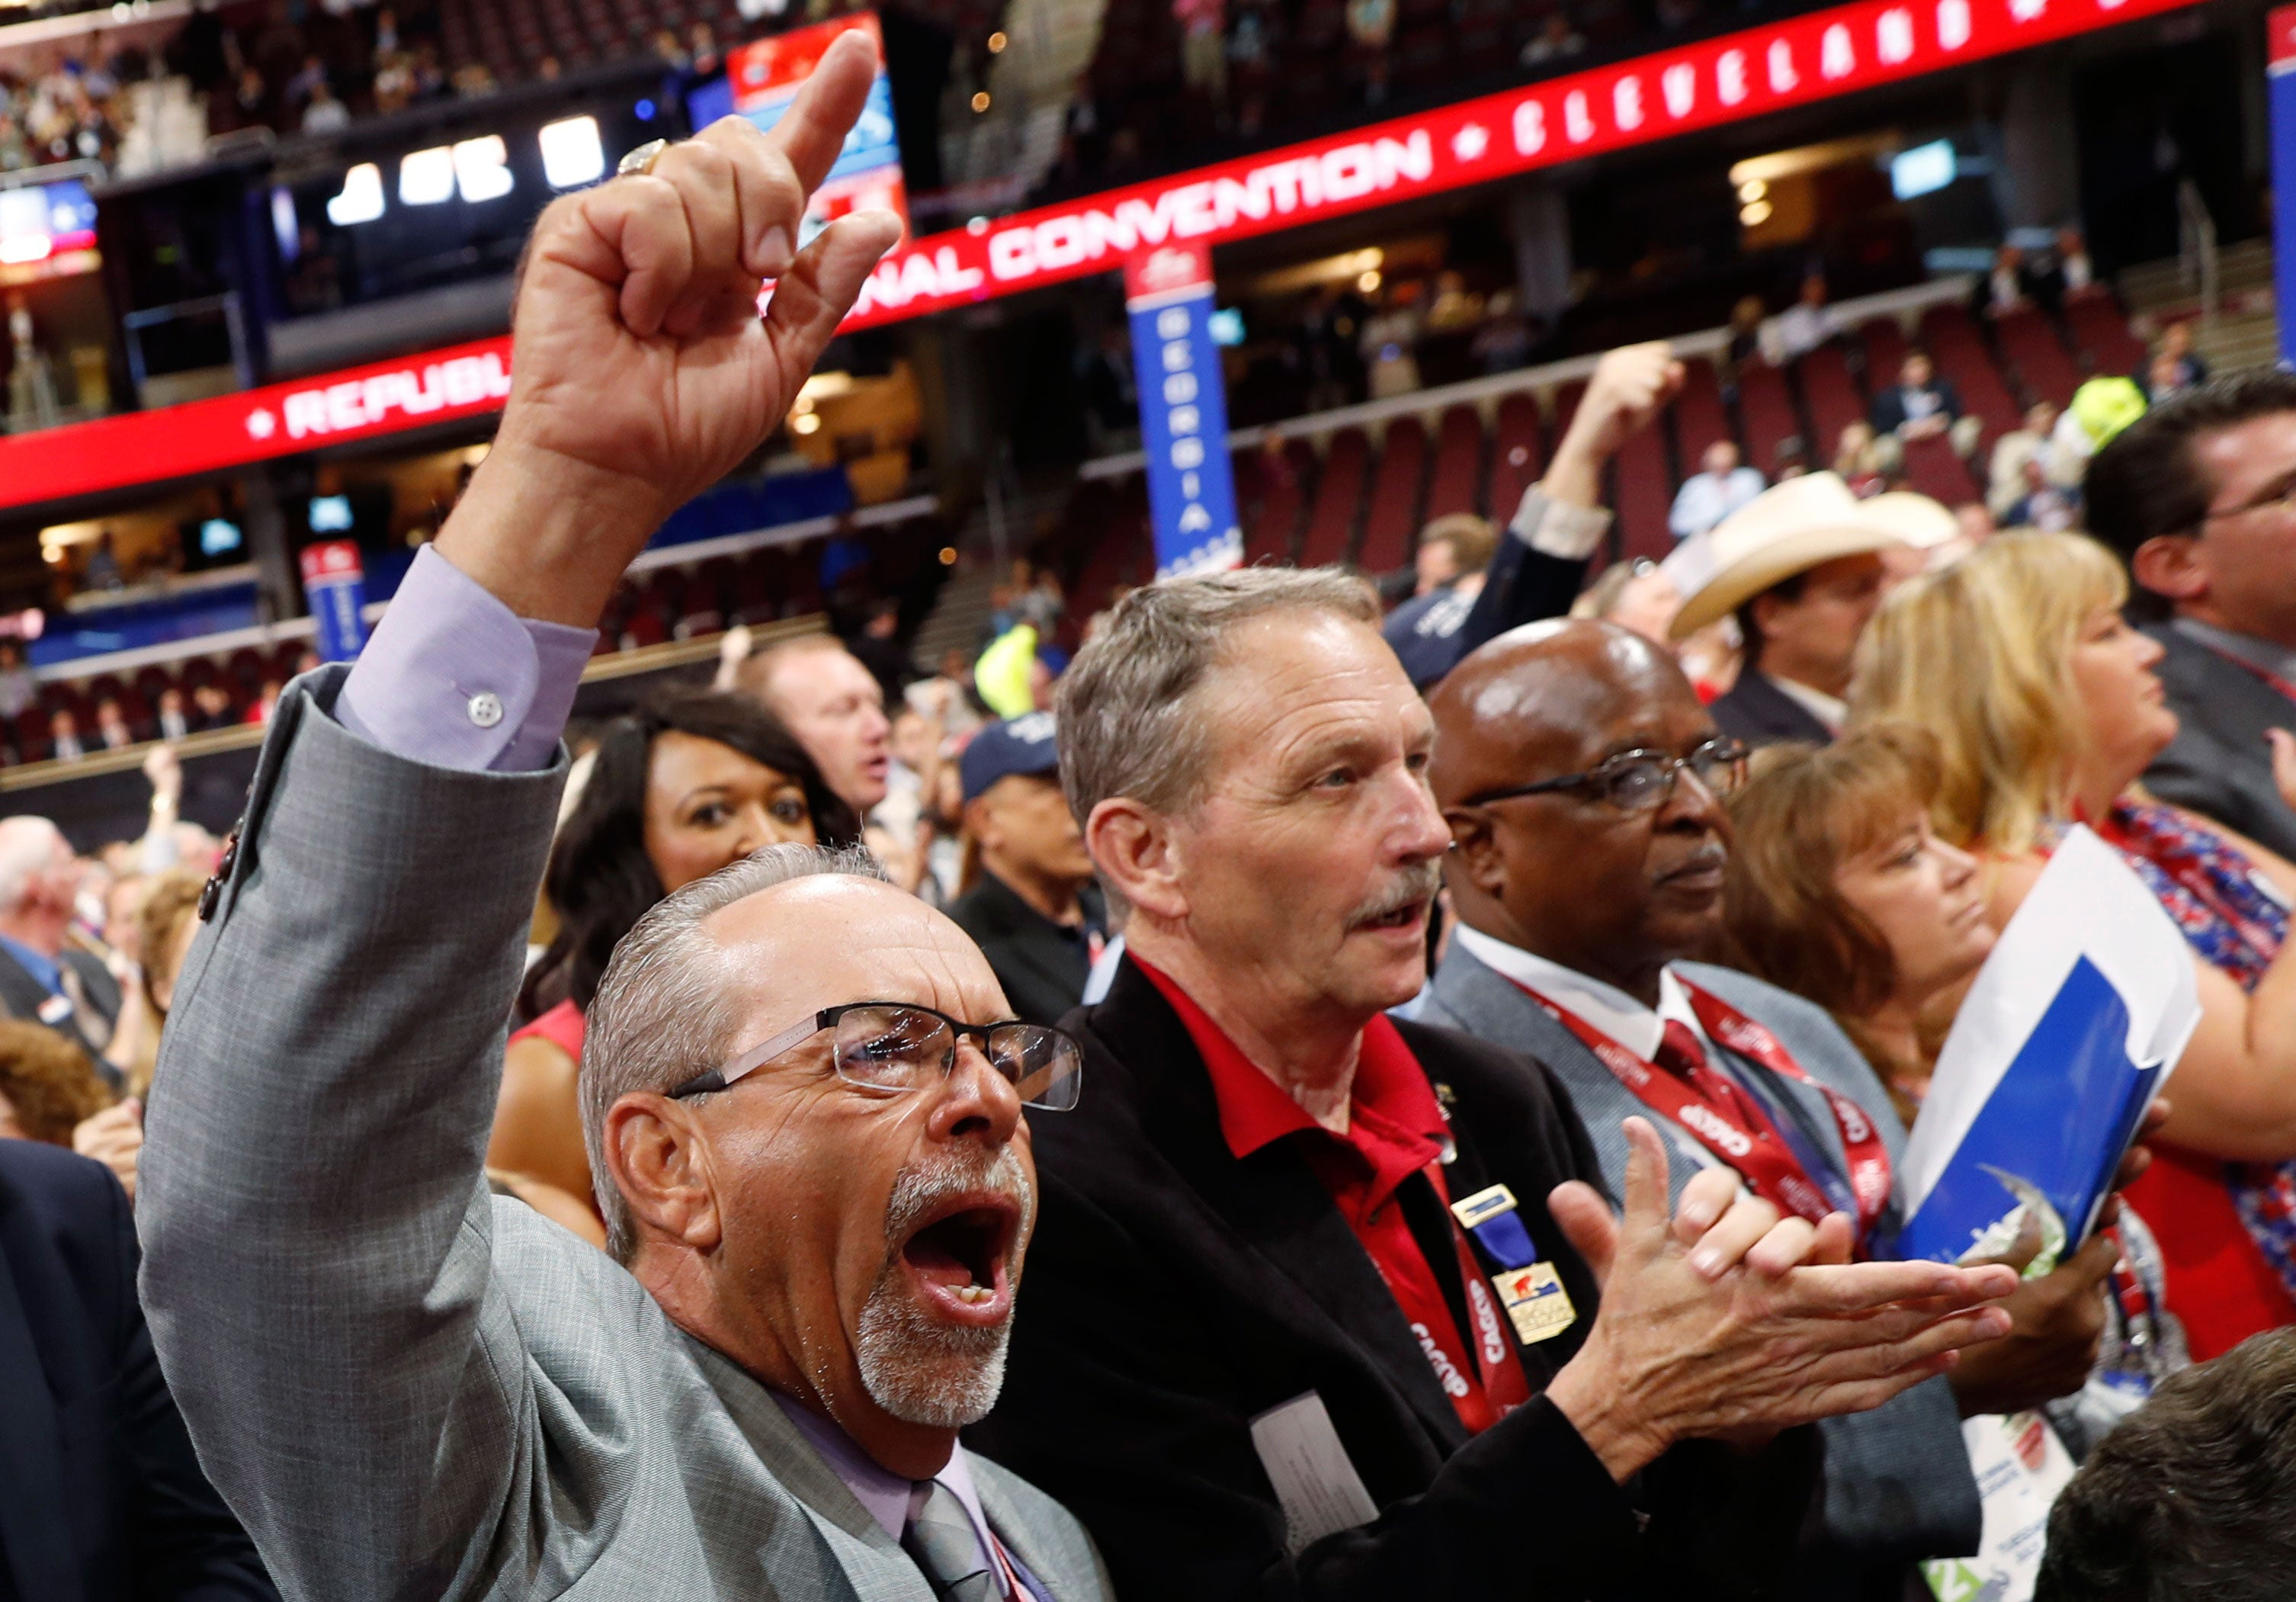 Delegates cheer during the second session of the convention on July 19, 2016. (Jonathan Ernst/Reuters/Newscom)